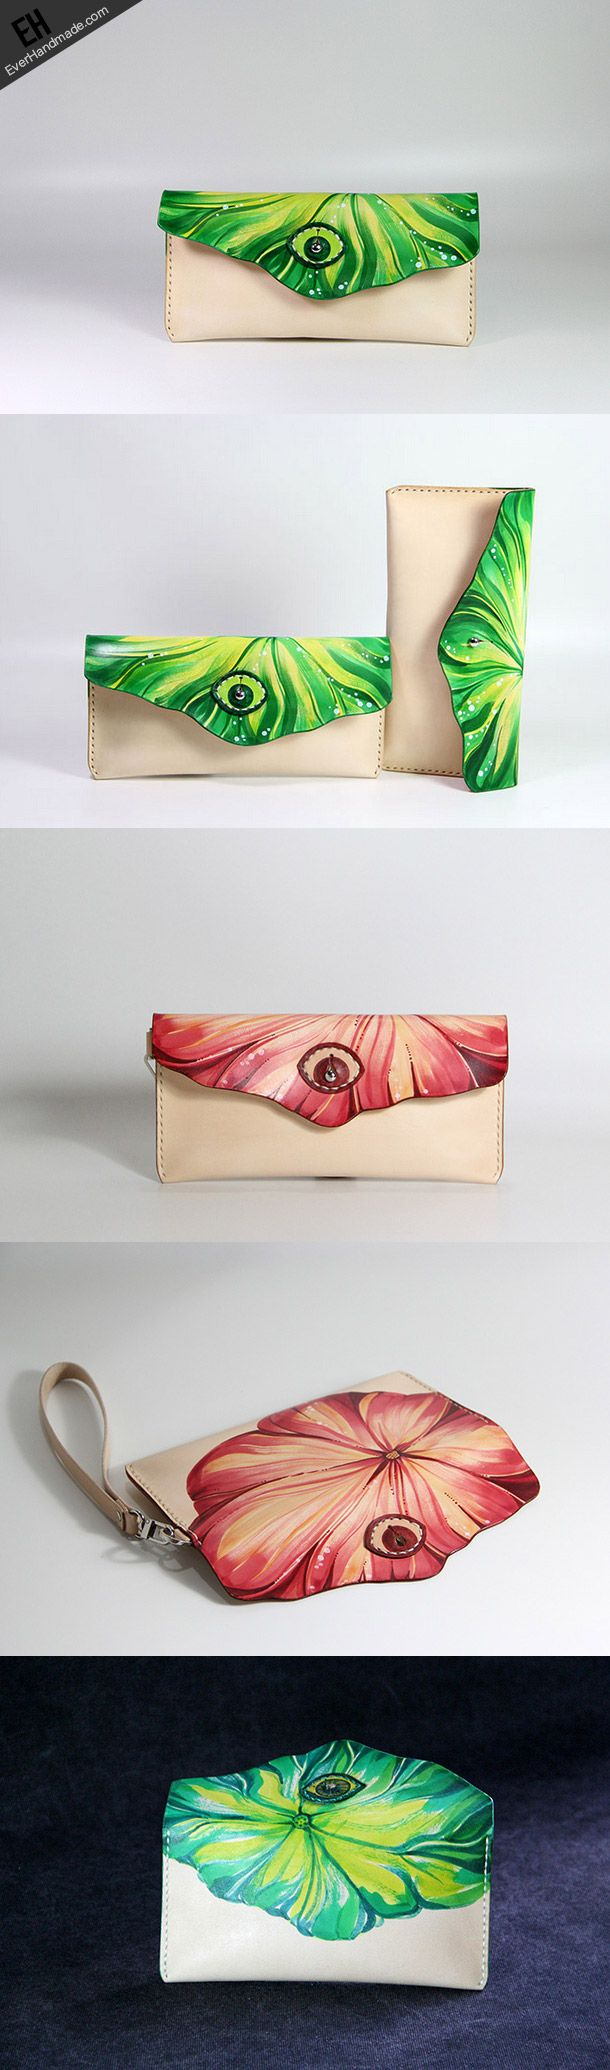 Handmade custom hand painted leather clutch long wallet for women/lady   EverHandmade